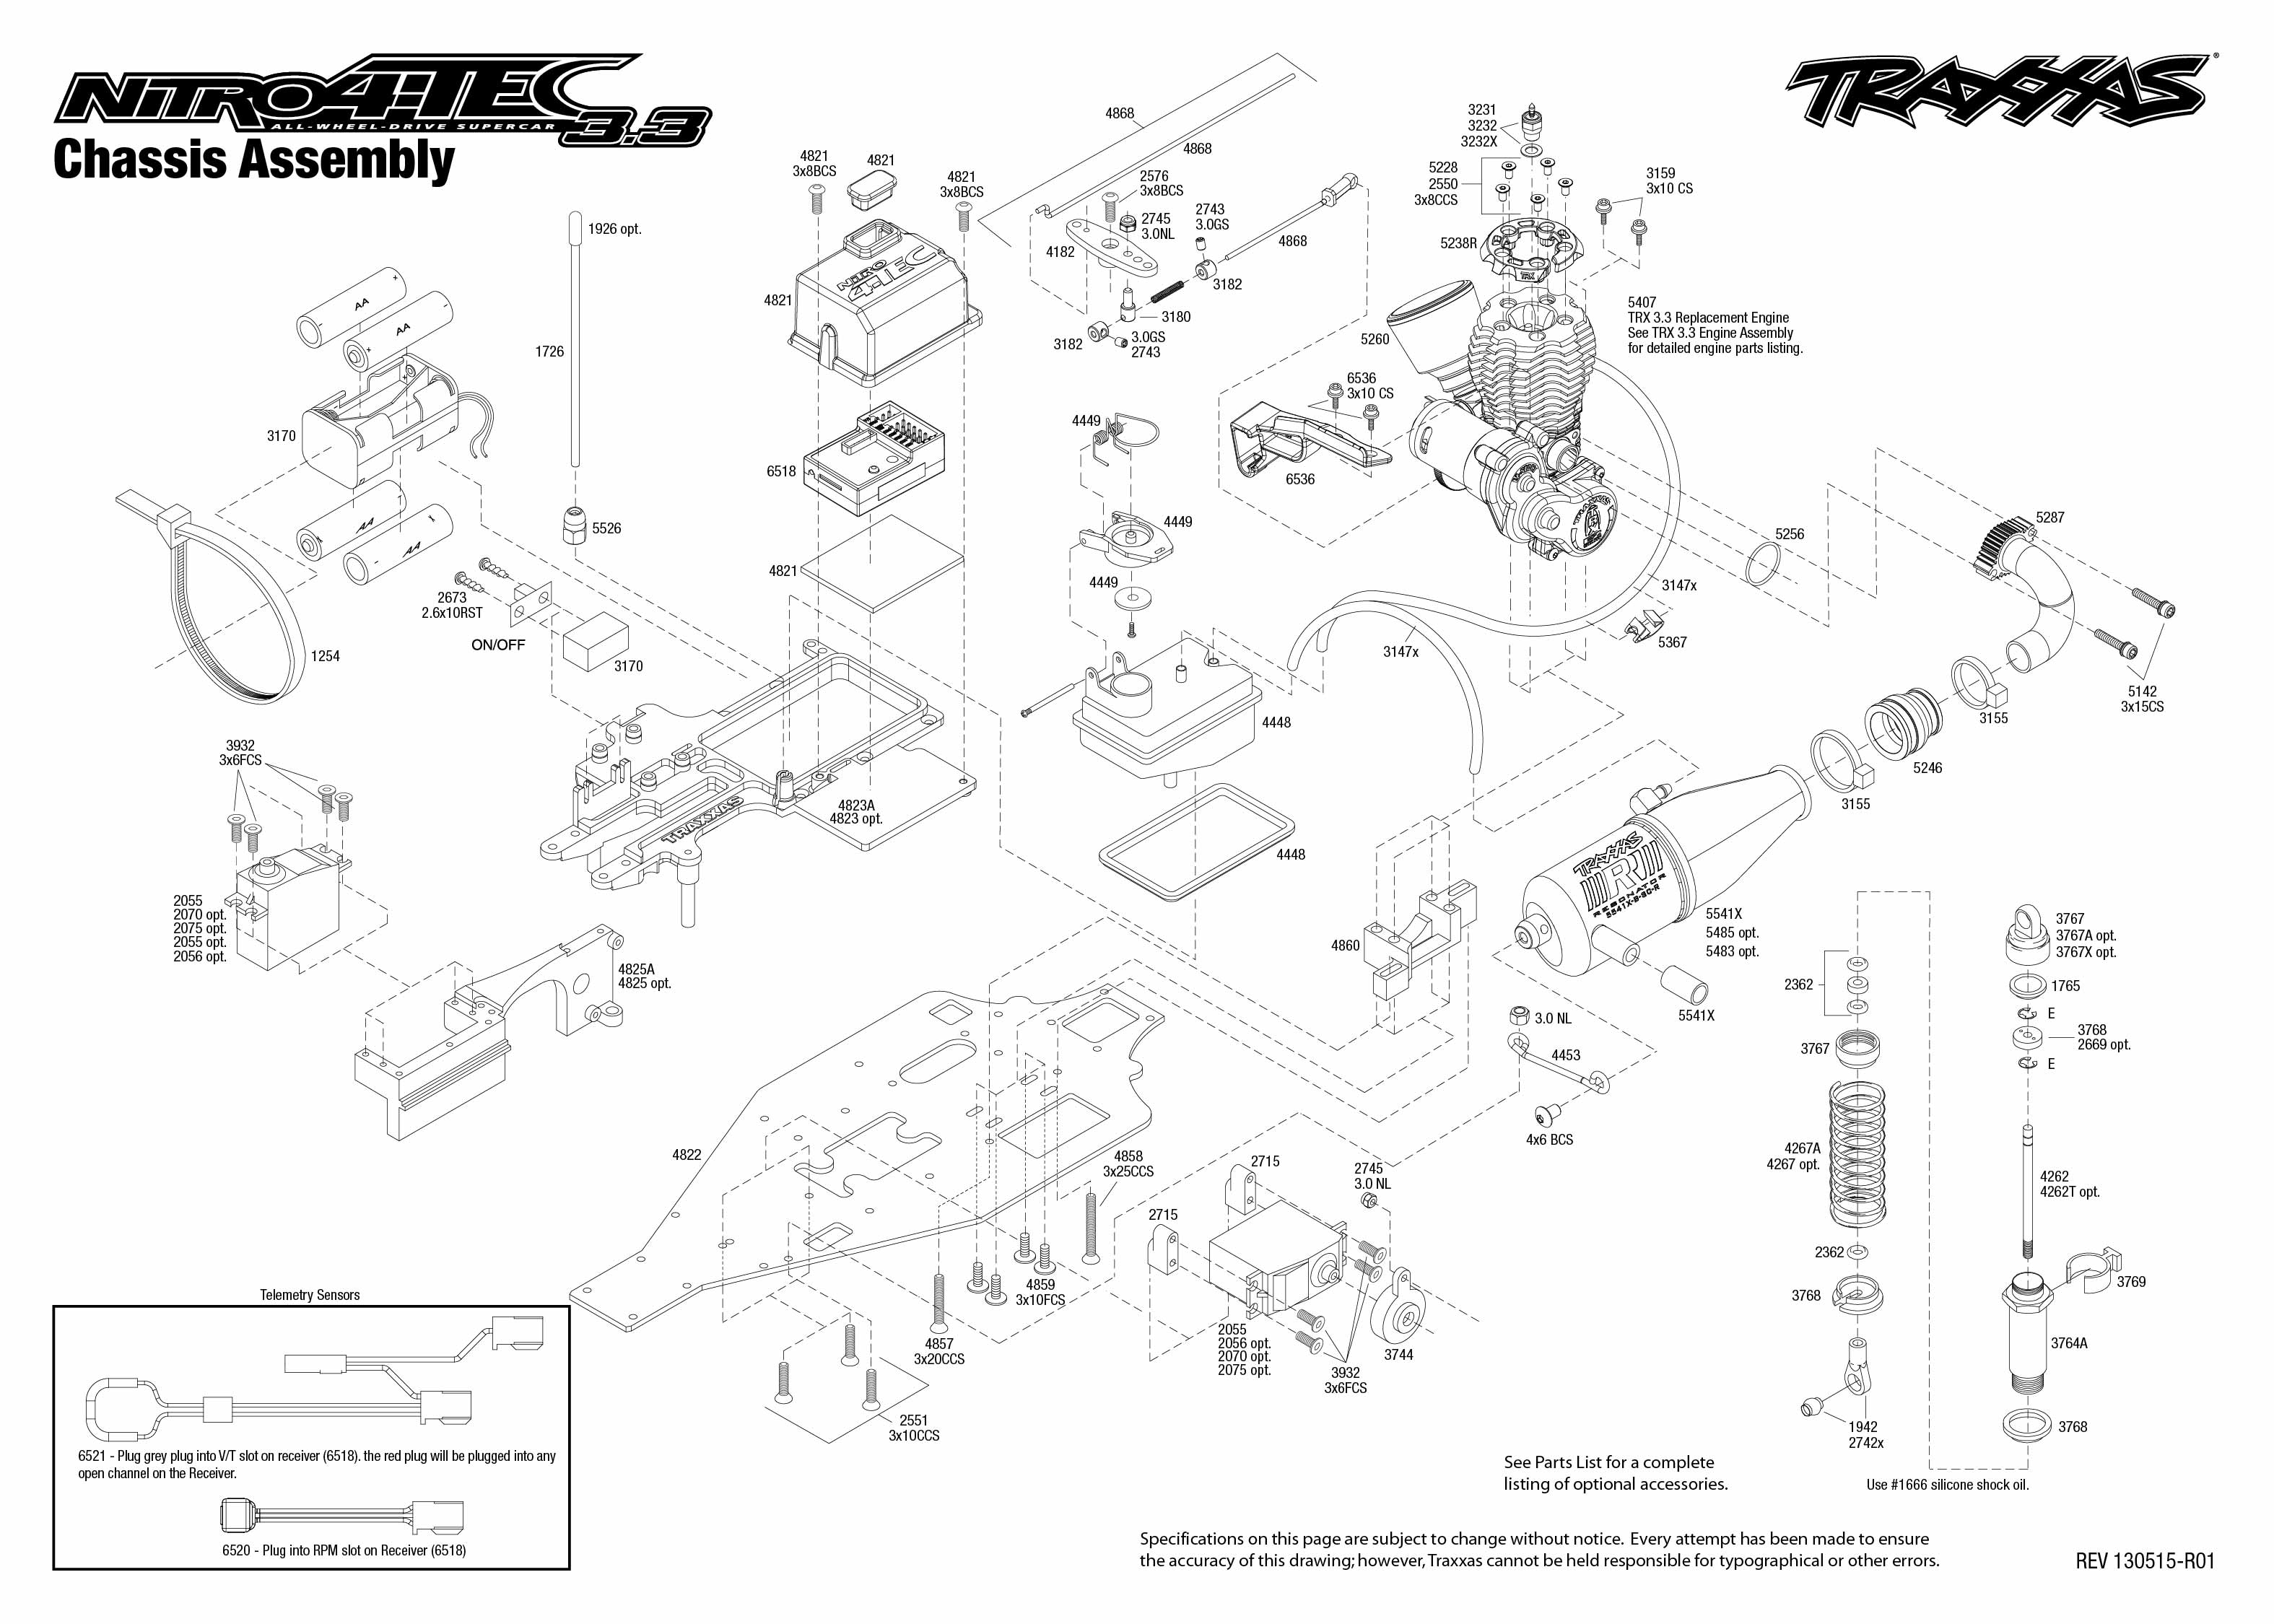 traxxas 3 3 engine diagram 3 4l engine diagram traxxas 1/10 scale 4wd nitro 4-tec 3.3 on road sedan - 4807 #15